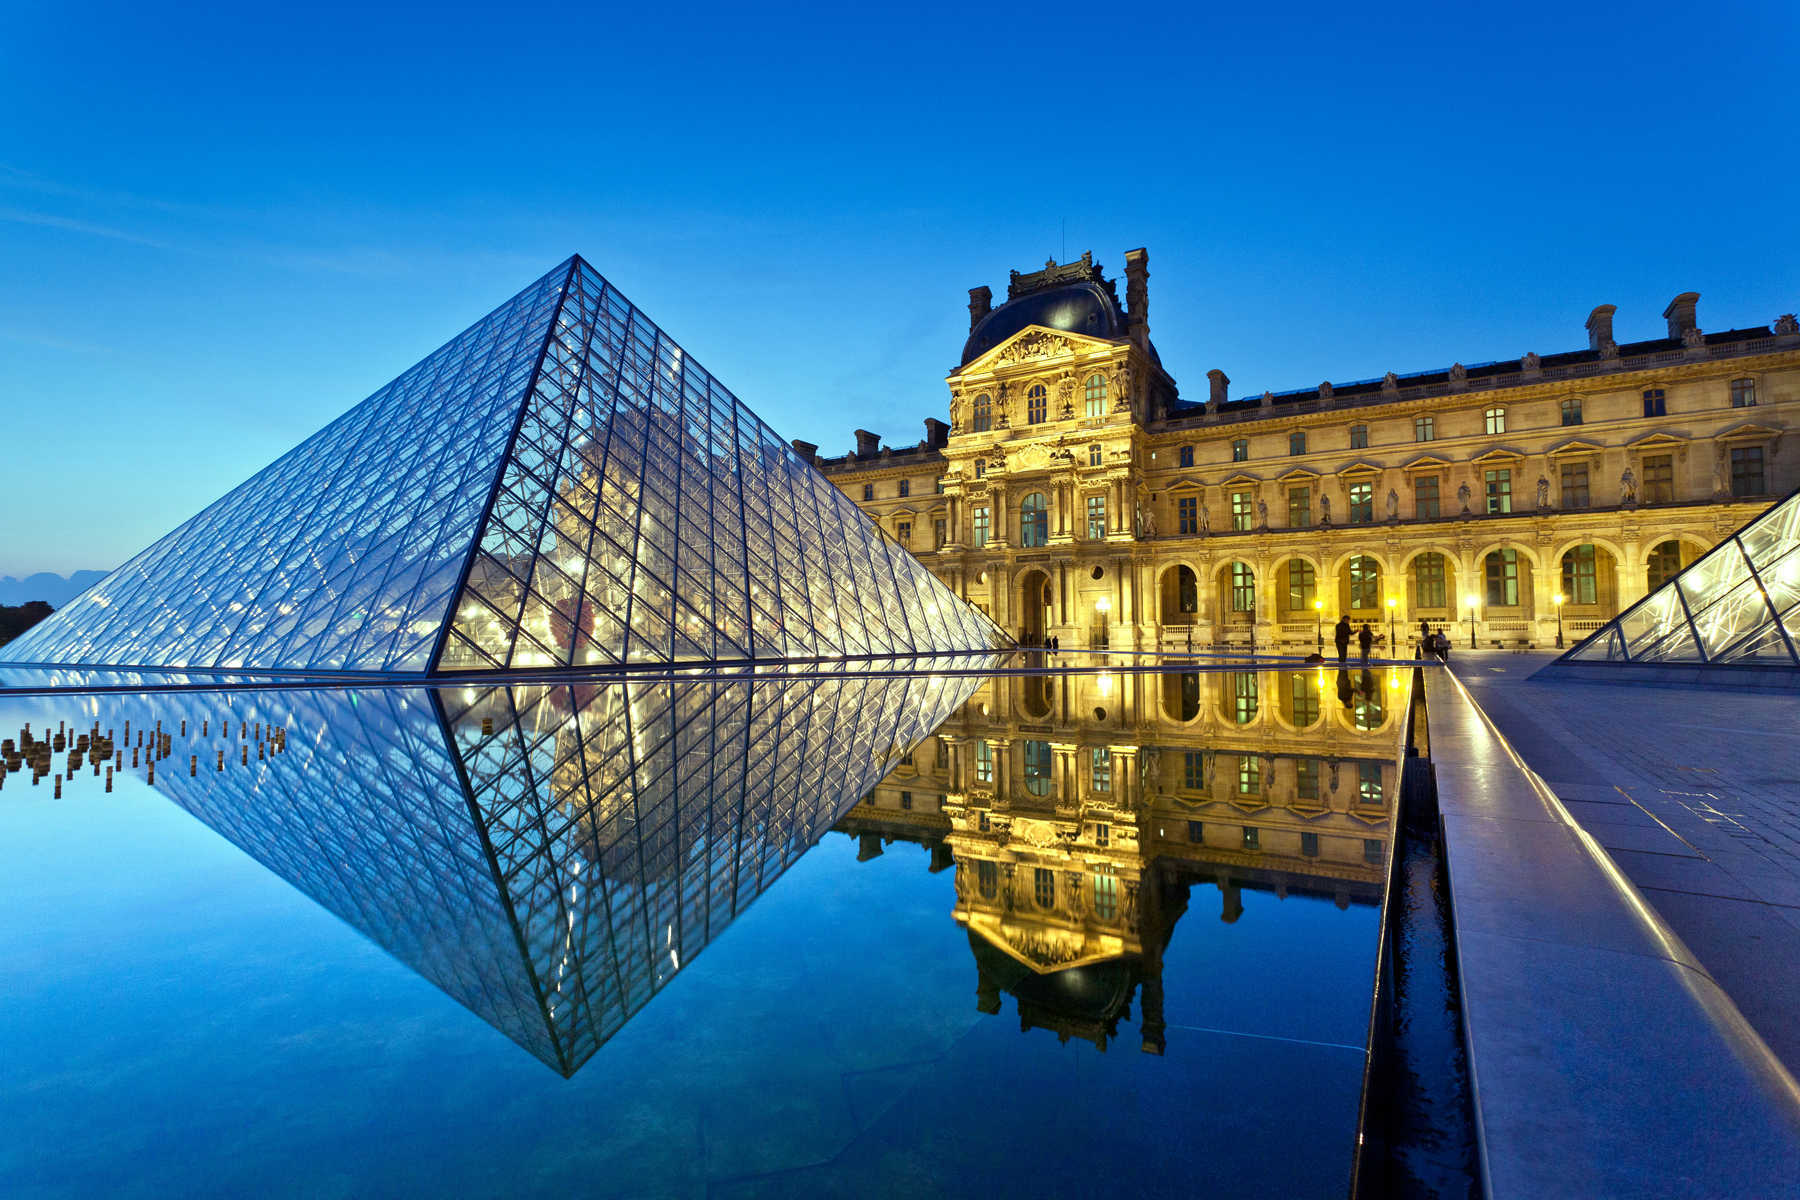 The Louvre's pyramid at night